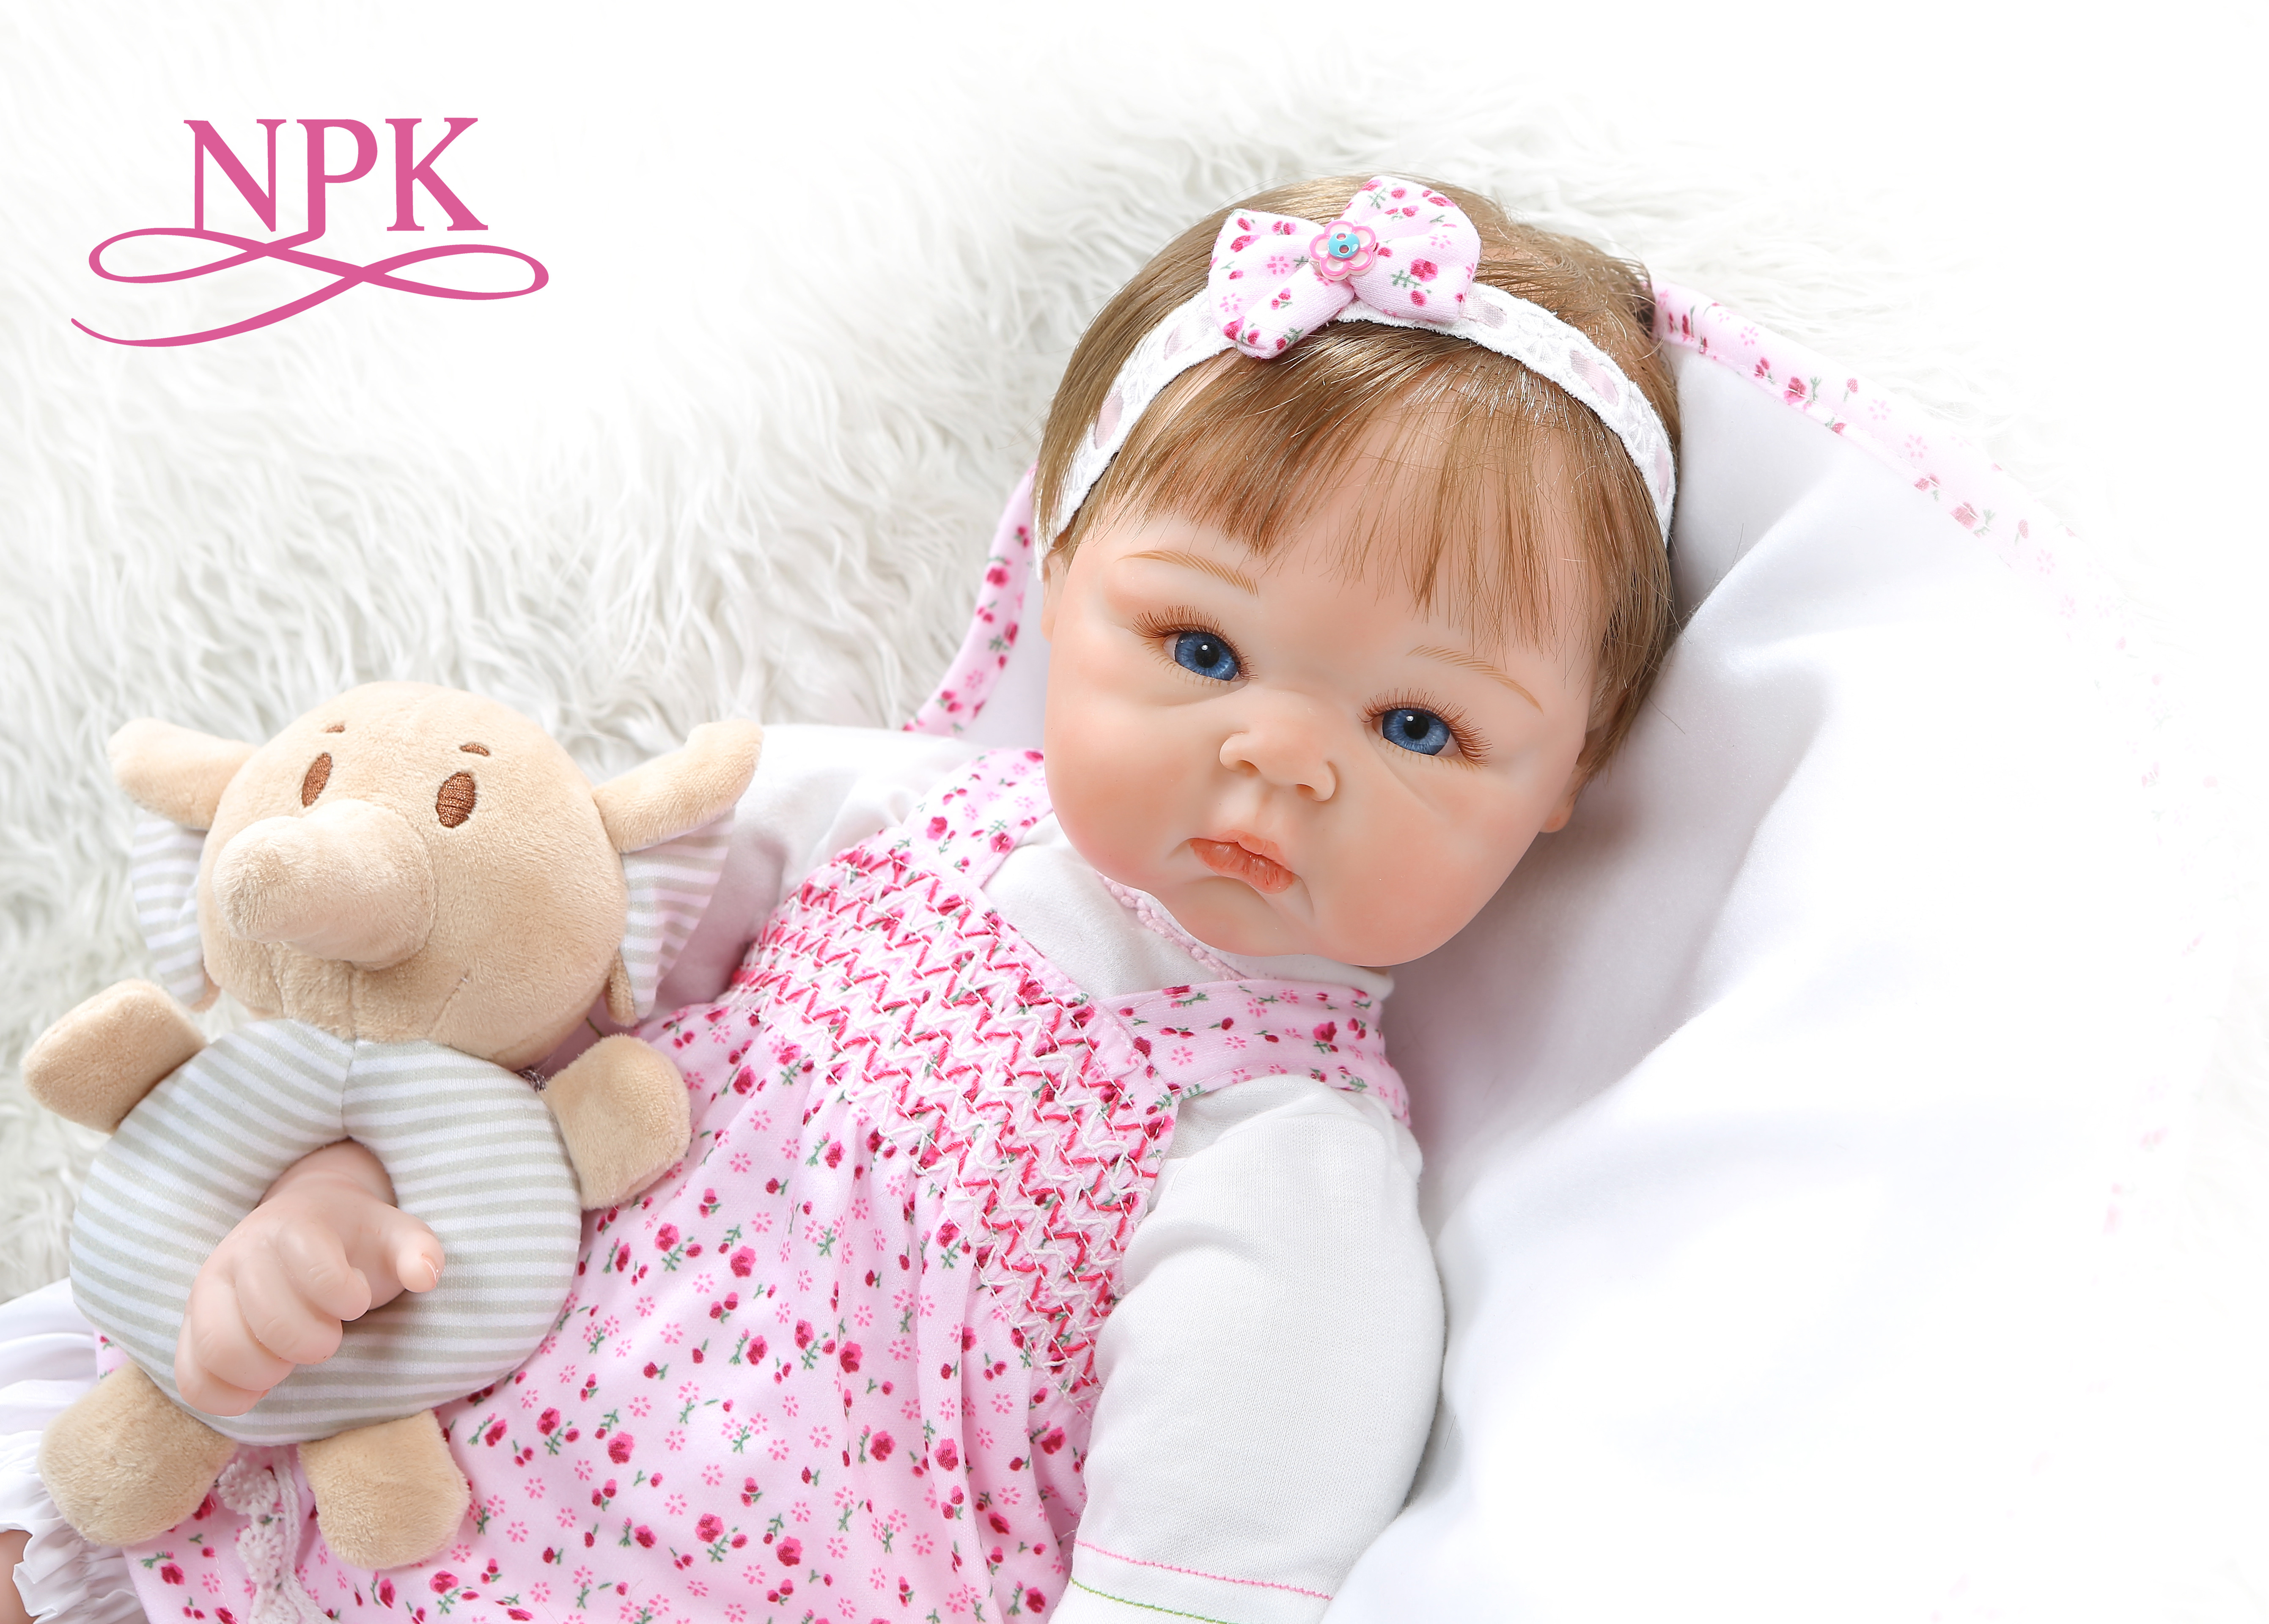 NPK 55CM 0-3Month Real Baby Bebe Realitic Reborn Baby Doll  Lifelike Soft Silicone Baby Girl Doll Weighted Body Rooted Hair